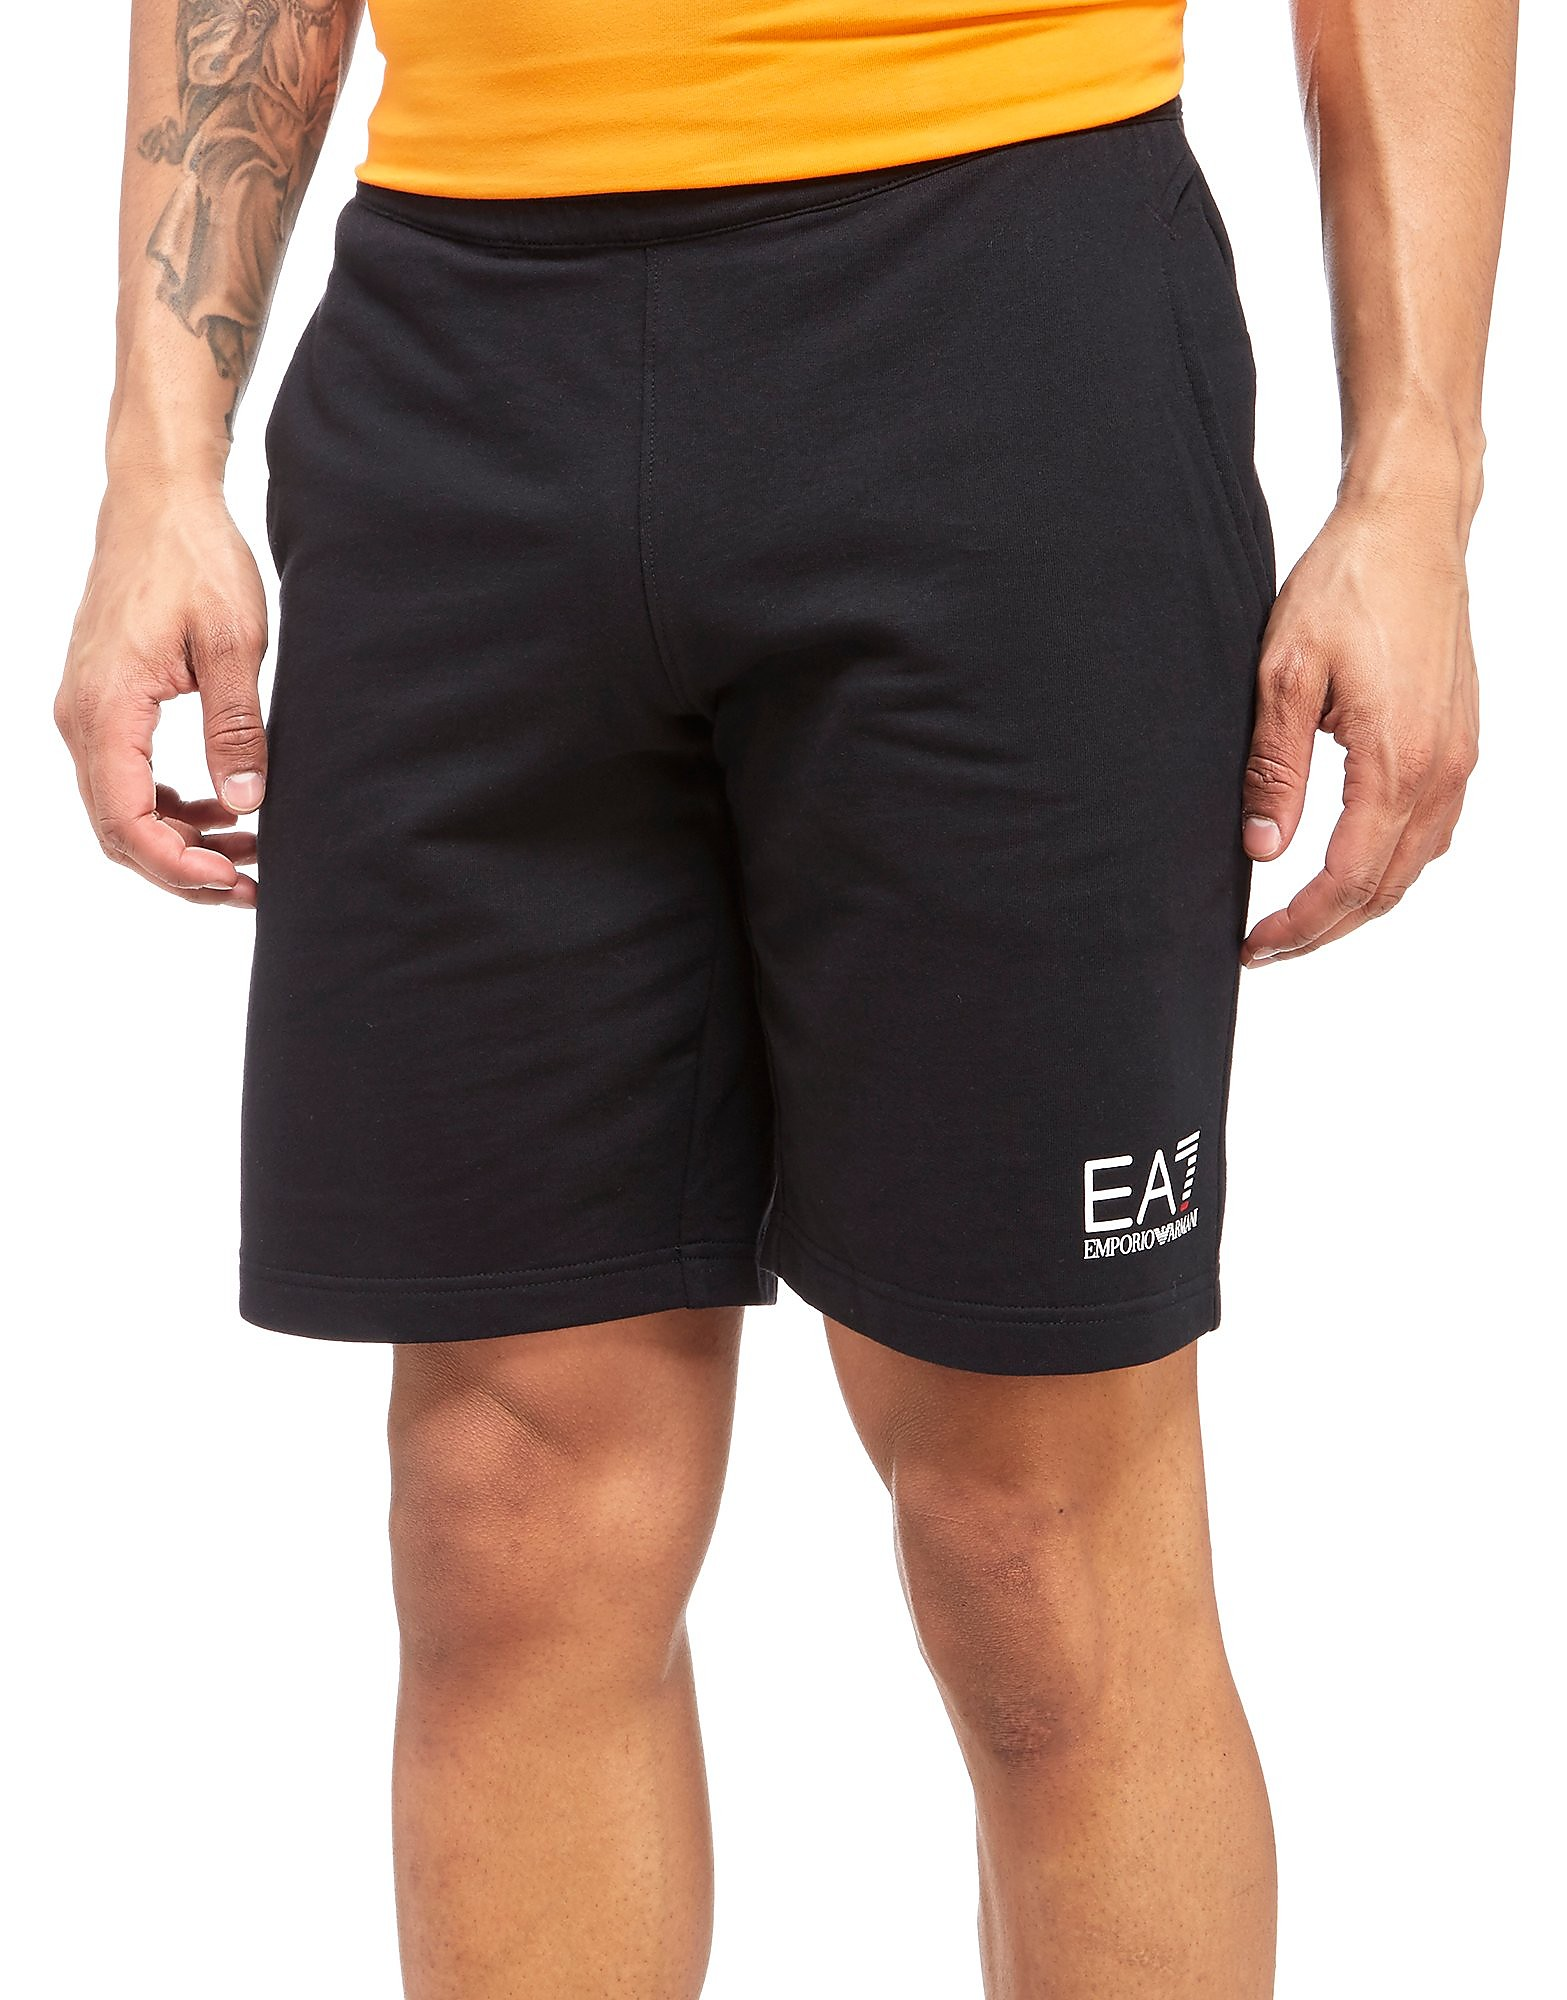 Emporio Armani EA7 Core FT Shorts